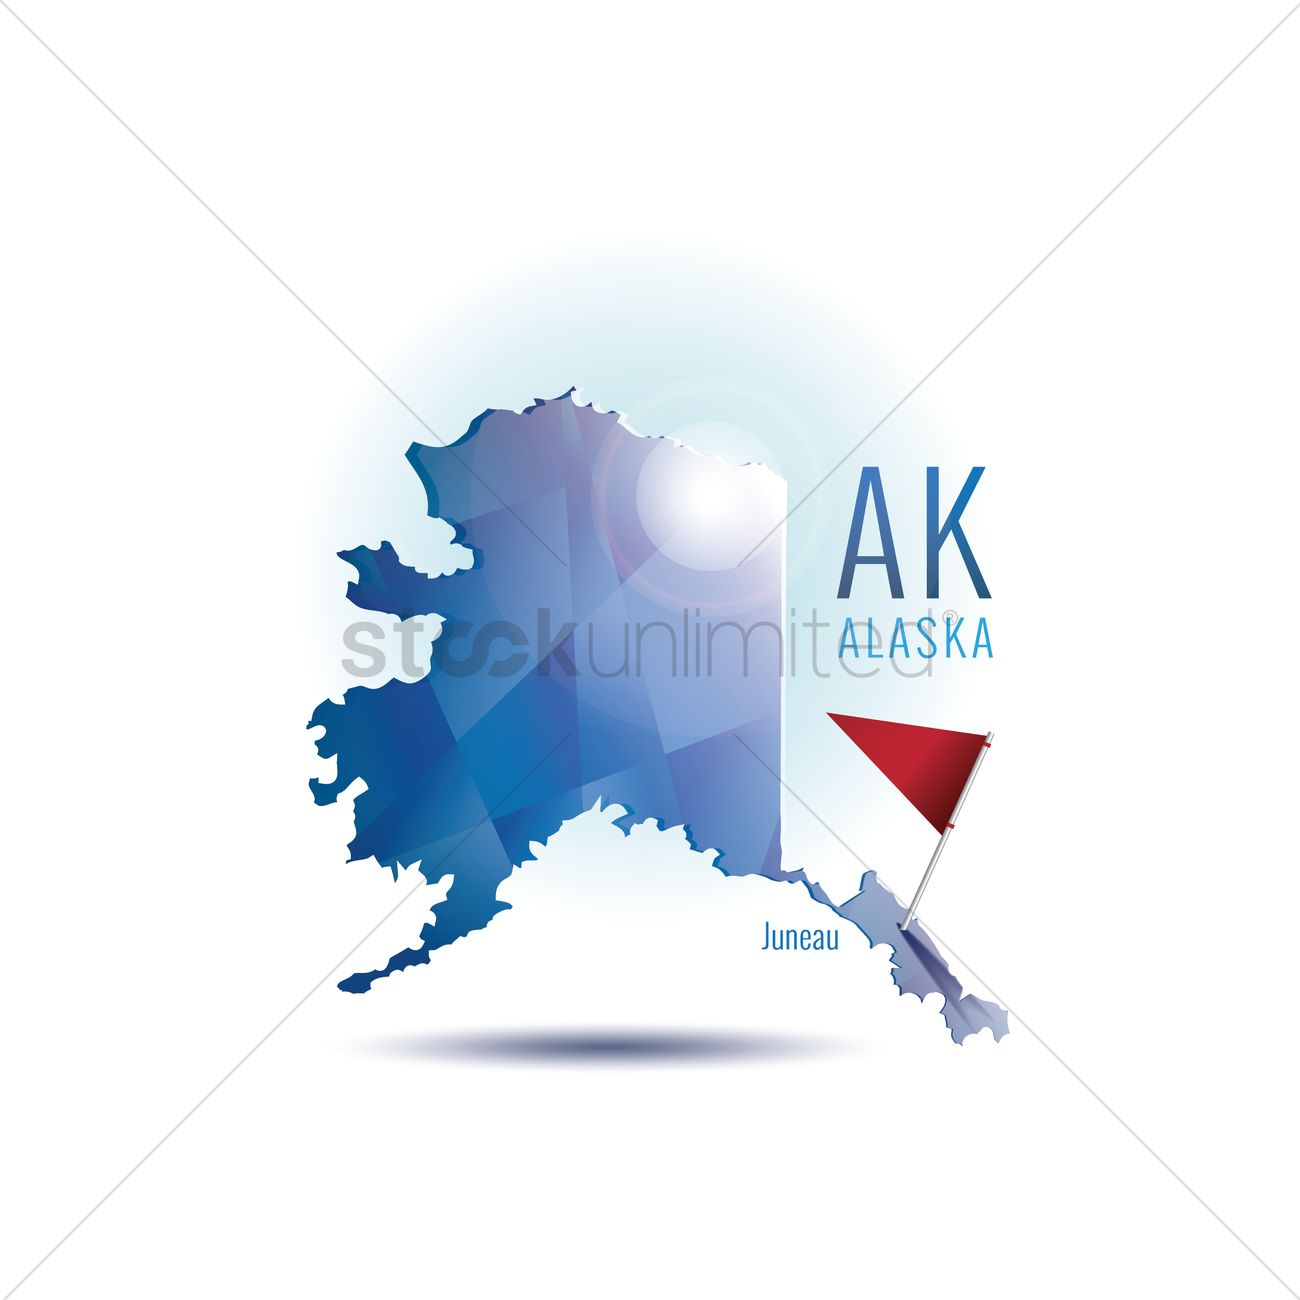 Alaska Map With Capital City Vector Image 1536828 Stockunlimited